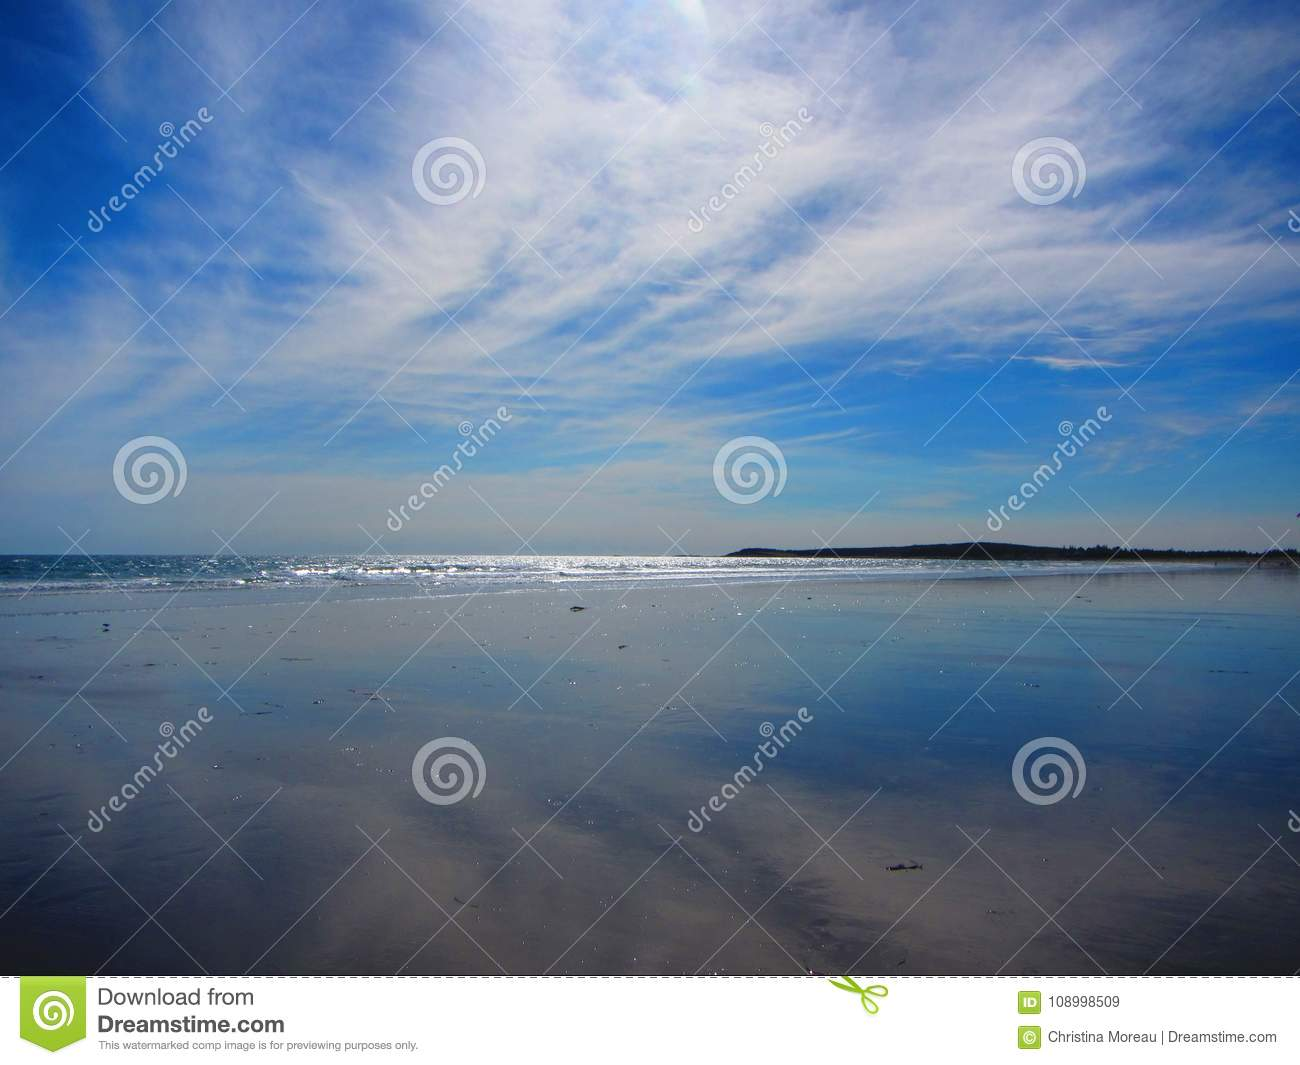 Sky Reflecting On The Sand At A Beach Stock Image - Image of beaches